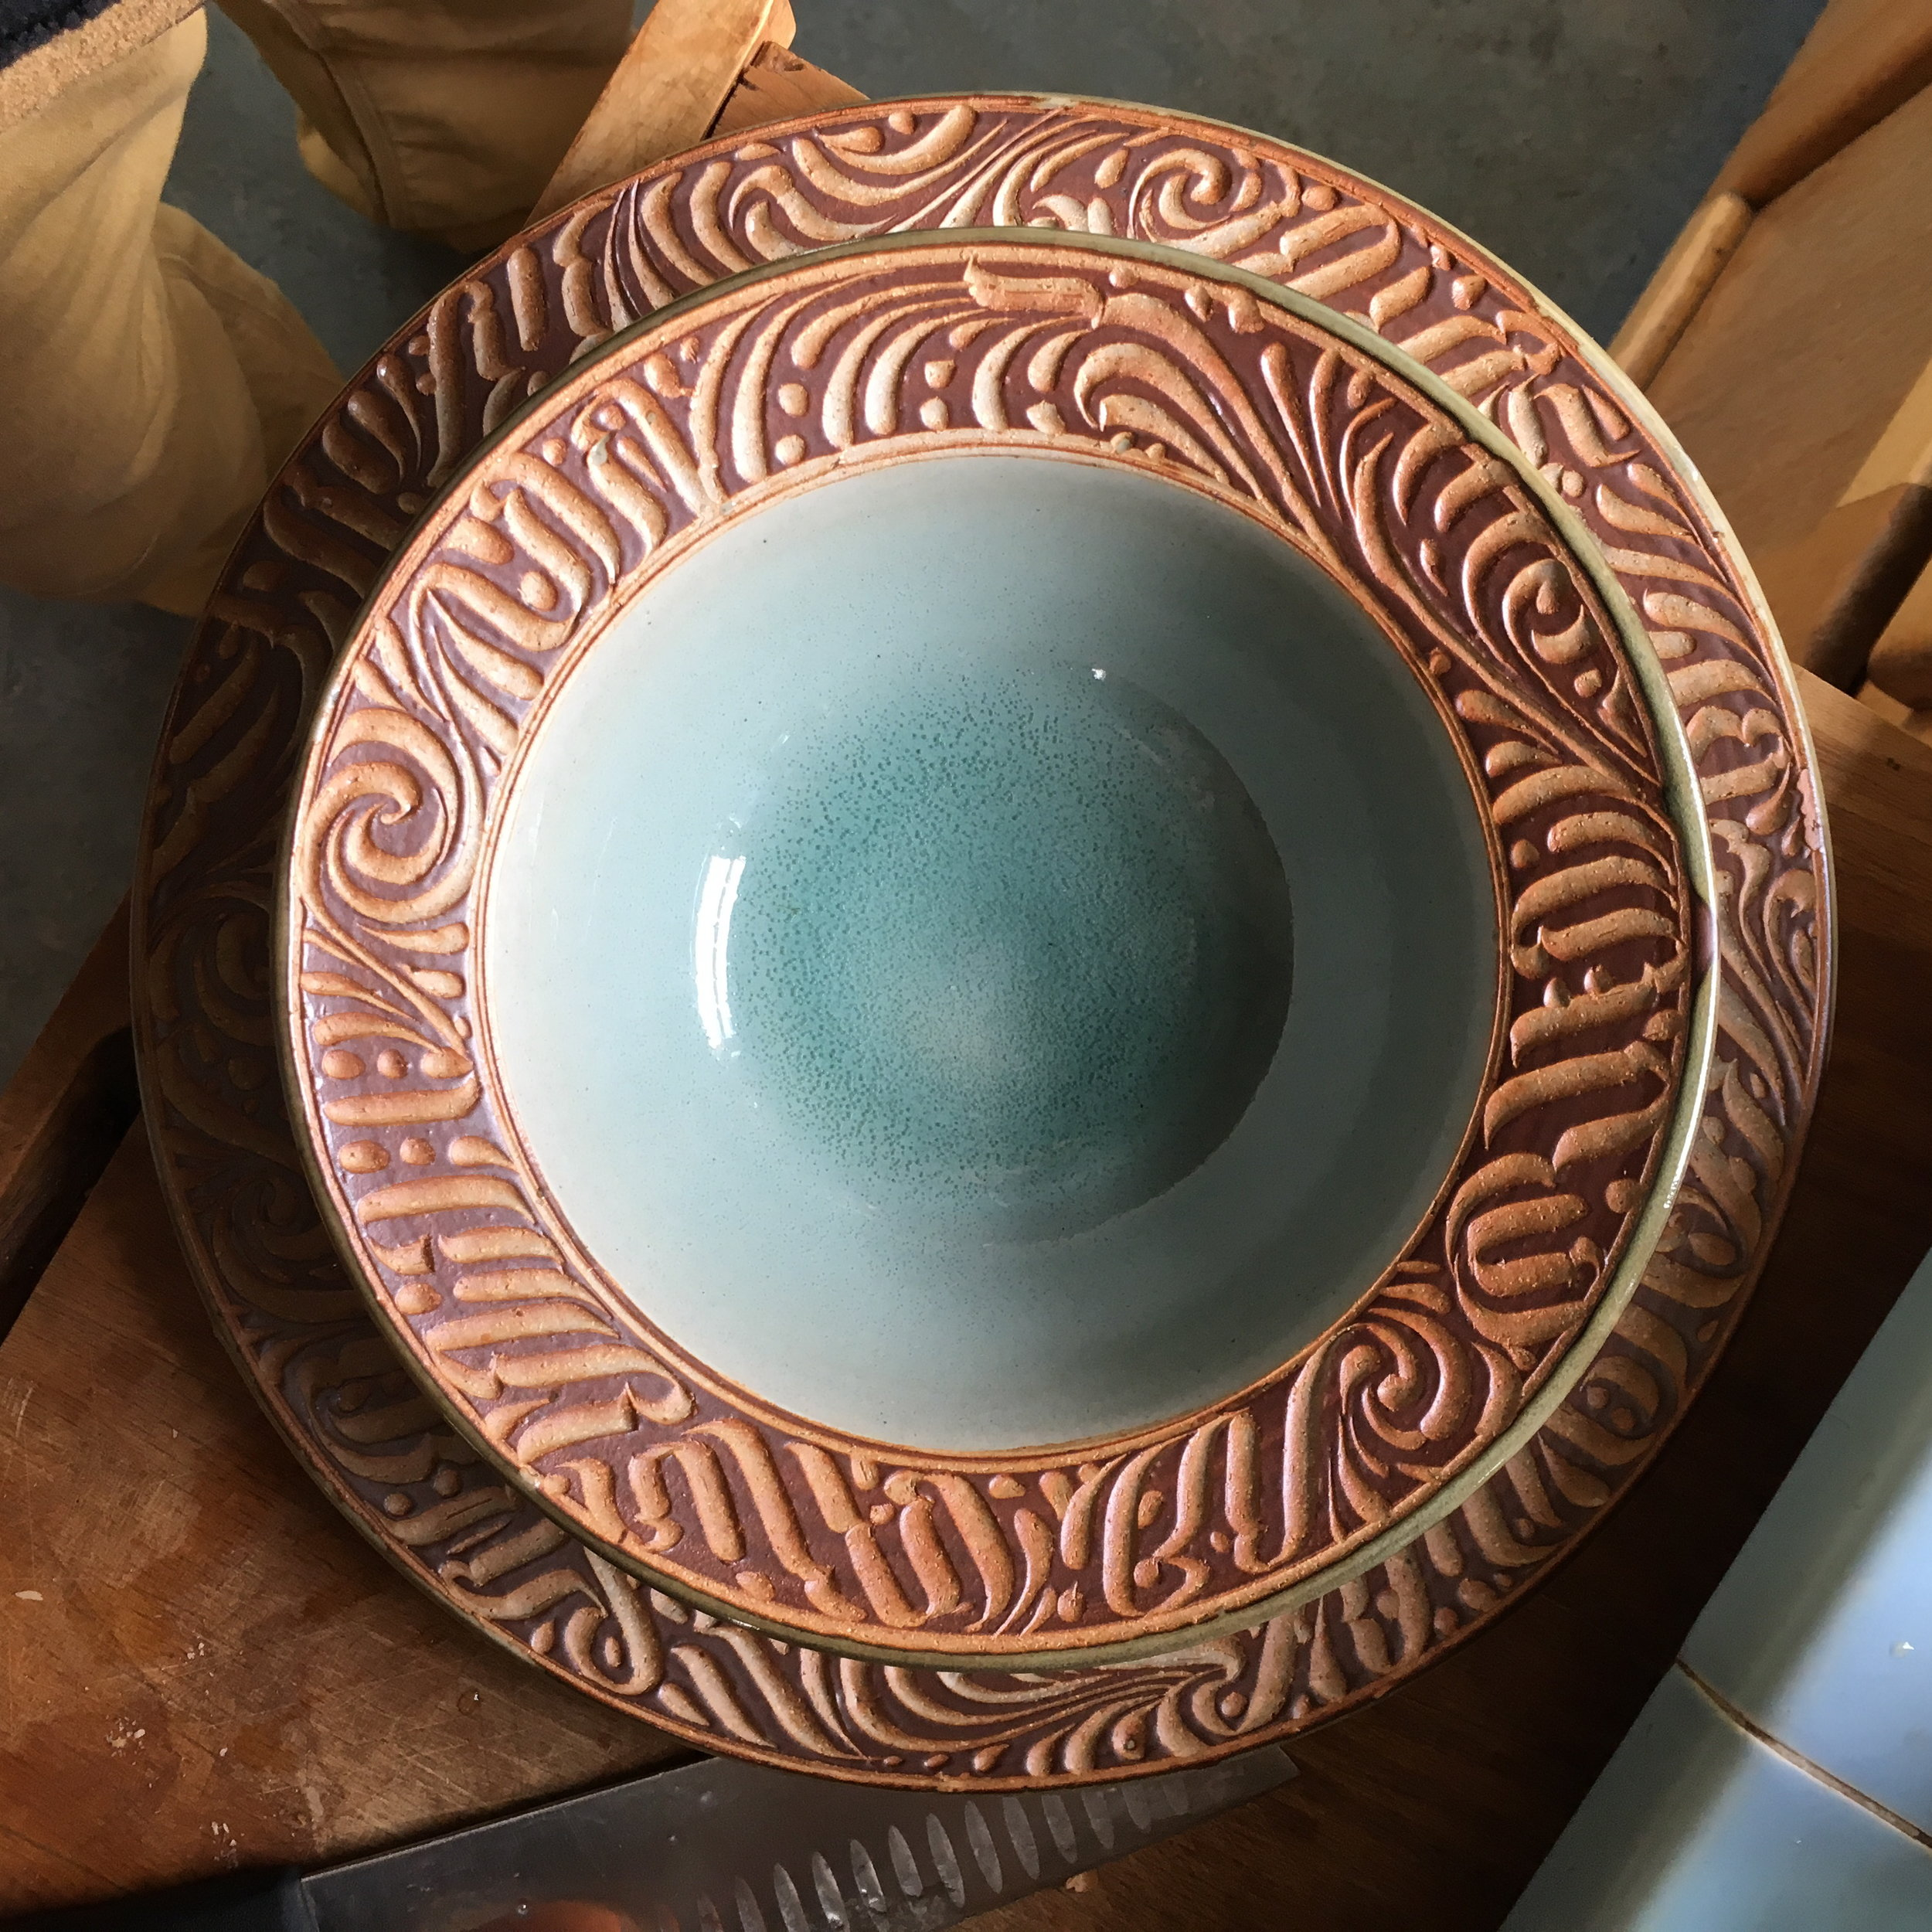 carved dinner sets coming this year.